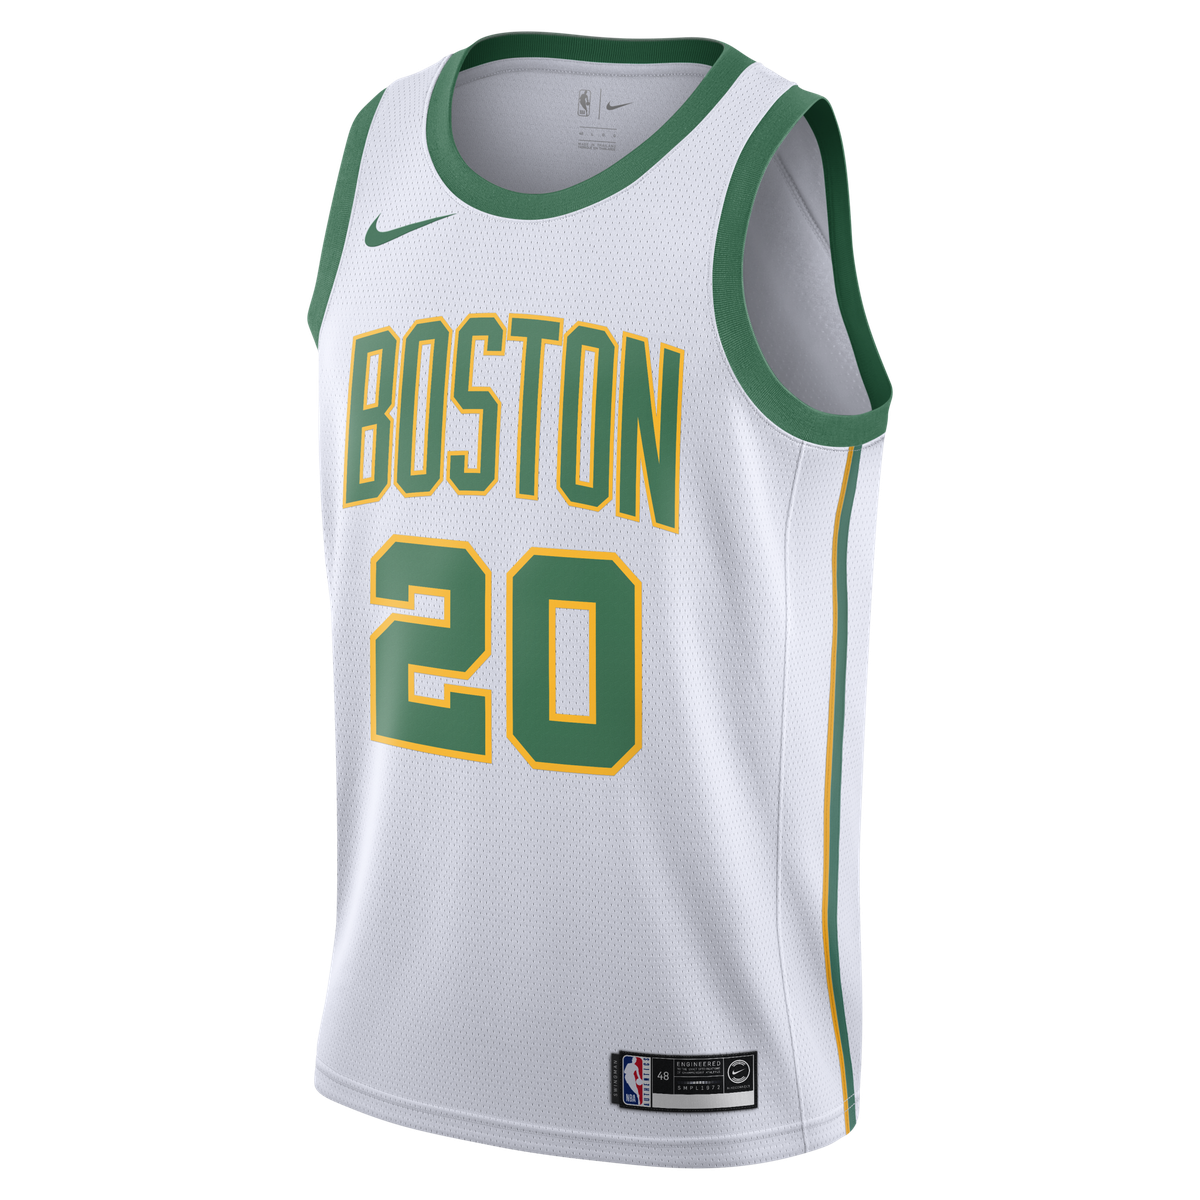 Gordon Hayward Nike Swingman Jersey - City Edition for  109.99 Fanatics 202e08ed5